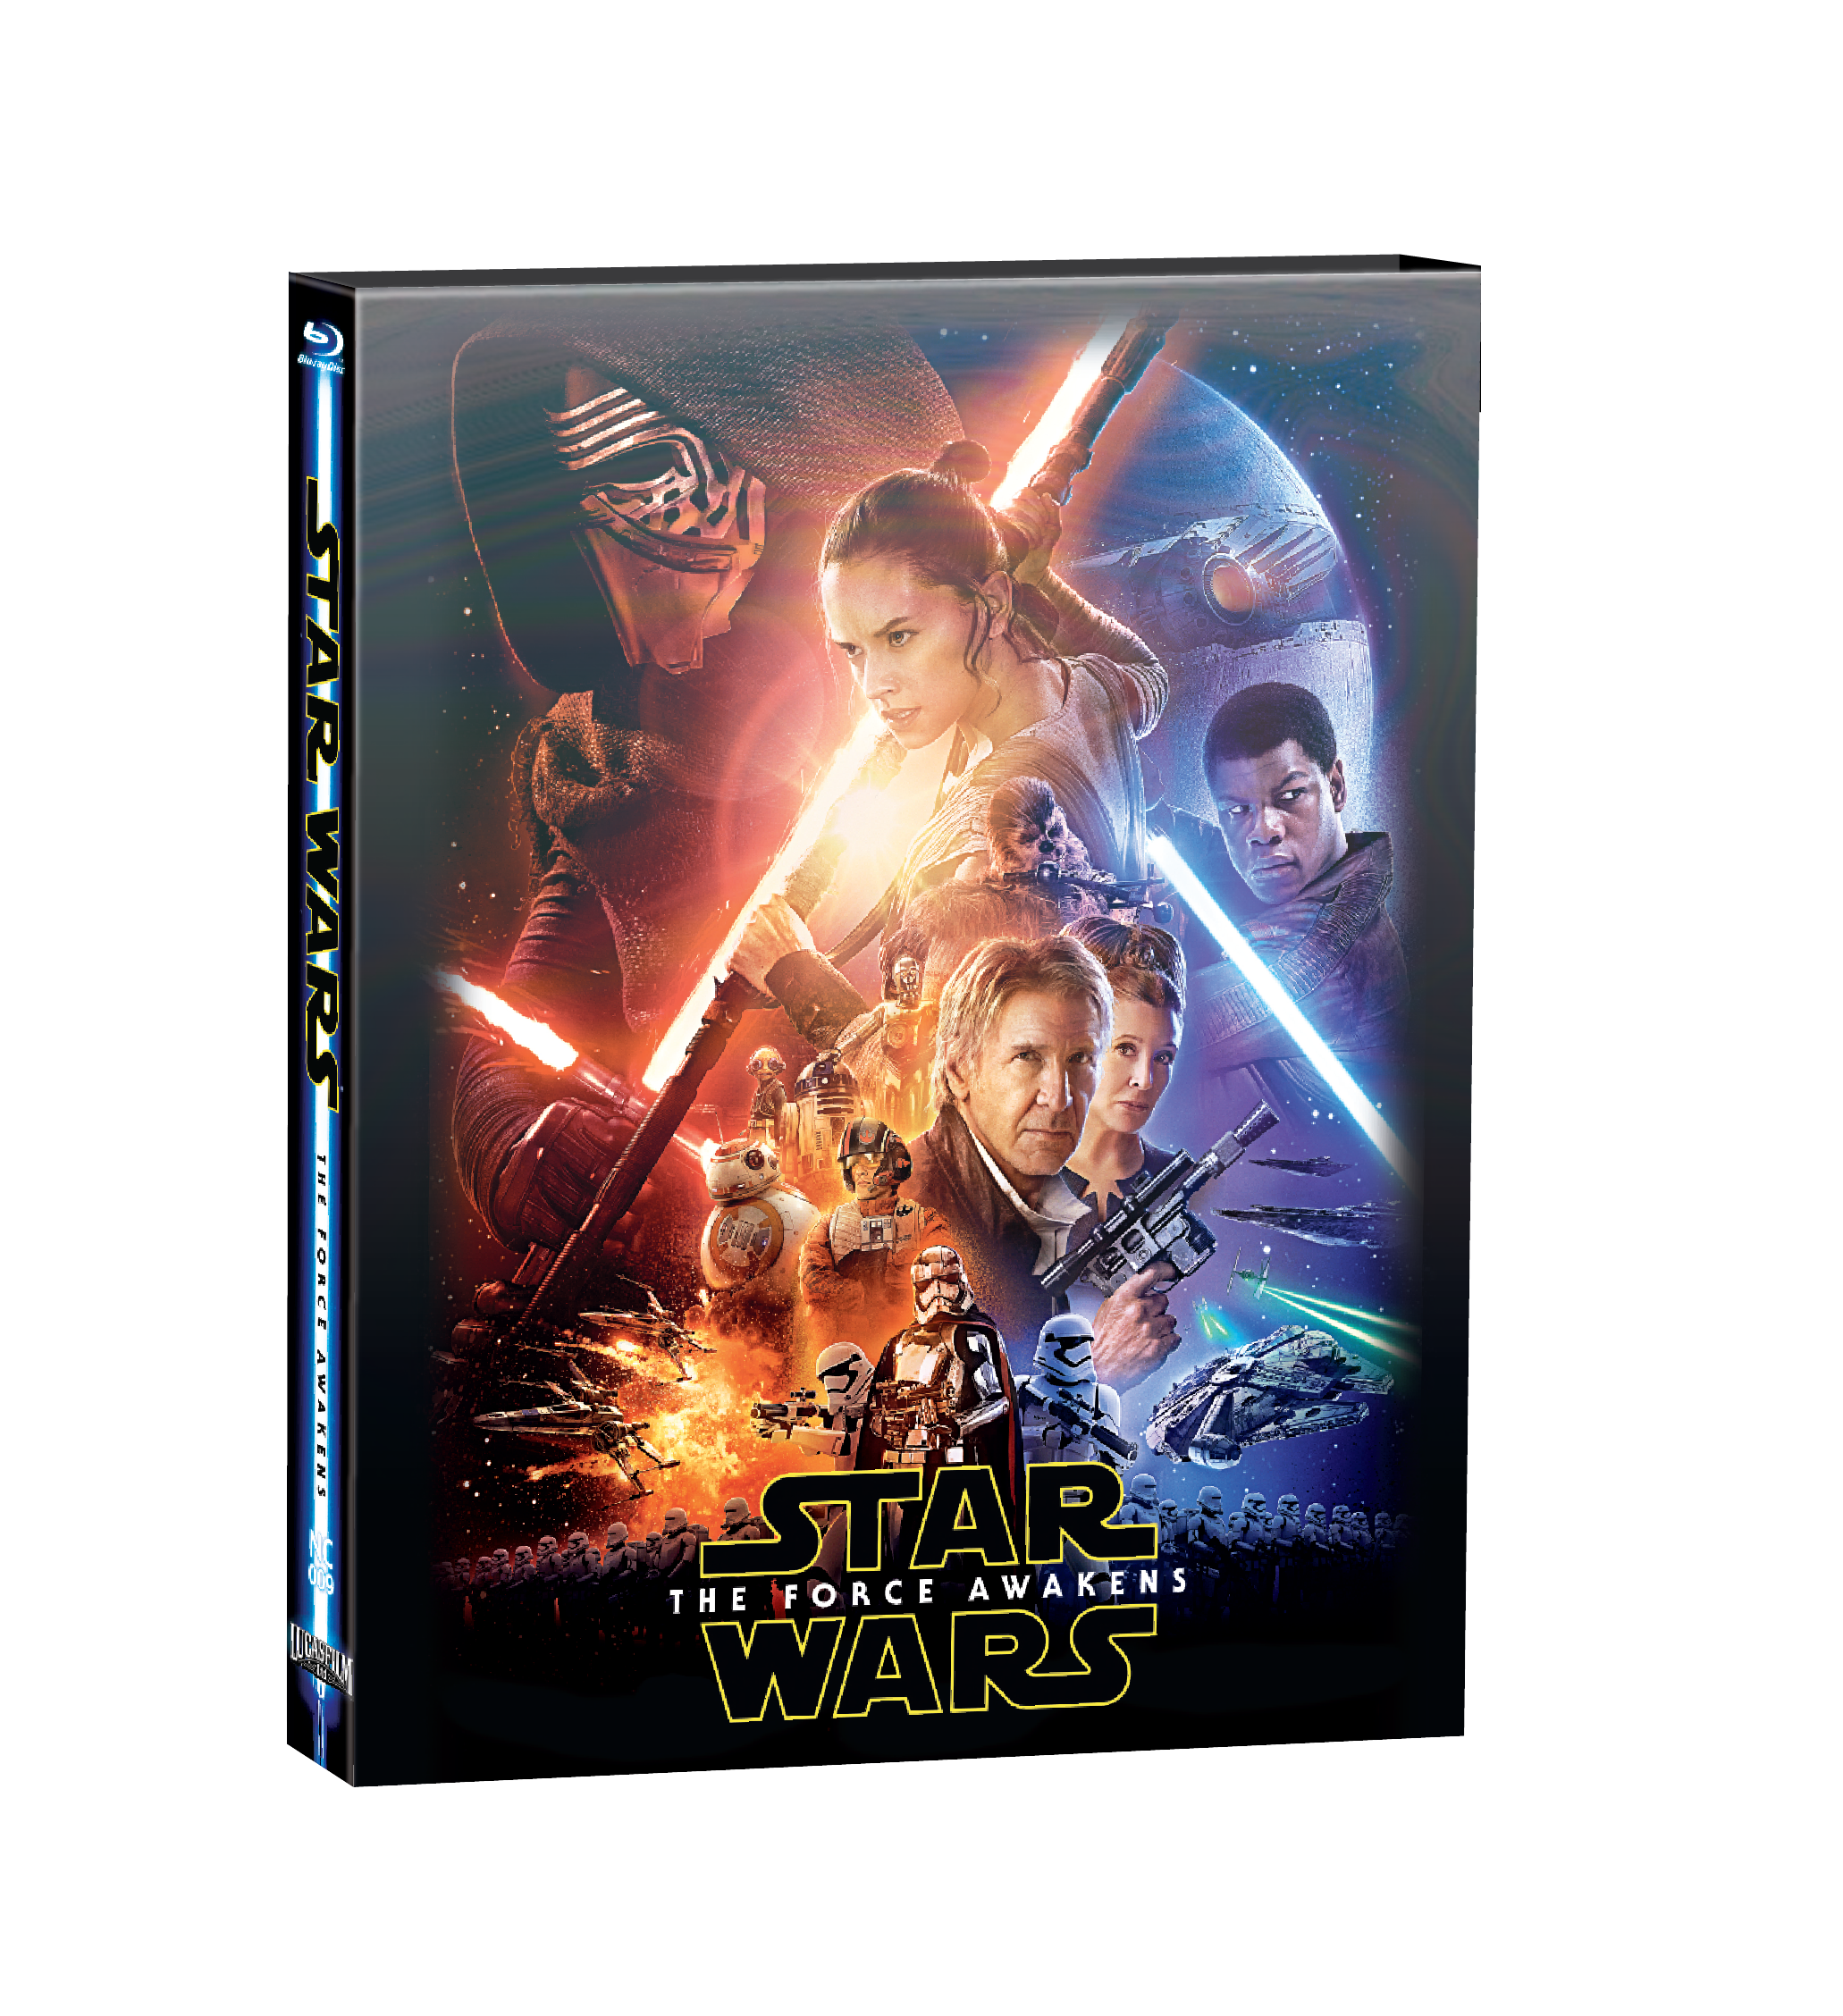 STAR WARS: EPISODE VII - THE FORCE AWAKENS STEELBOOK LENTI SLIP-A(LIMITED 400 COPIES) NC#9